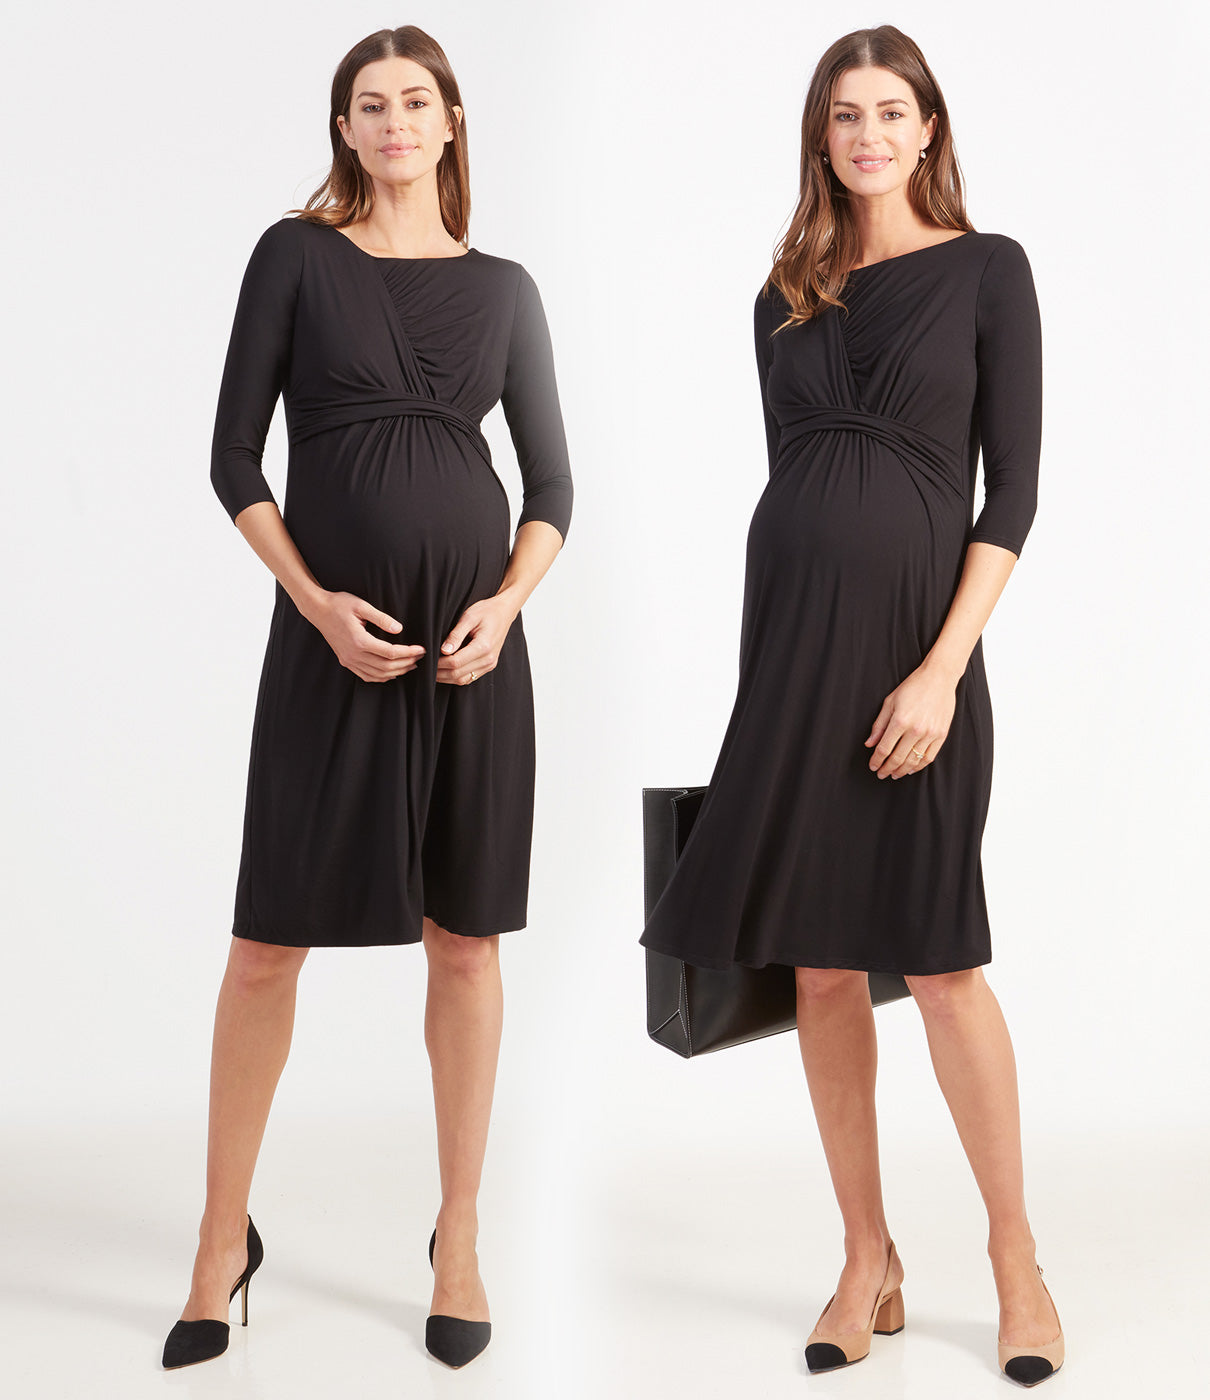 Grows With YouWear throughout pregnancy and after.  A great wear to work dress postpartum!